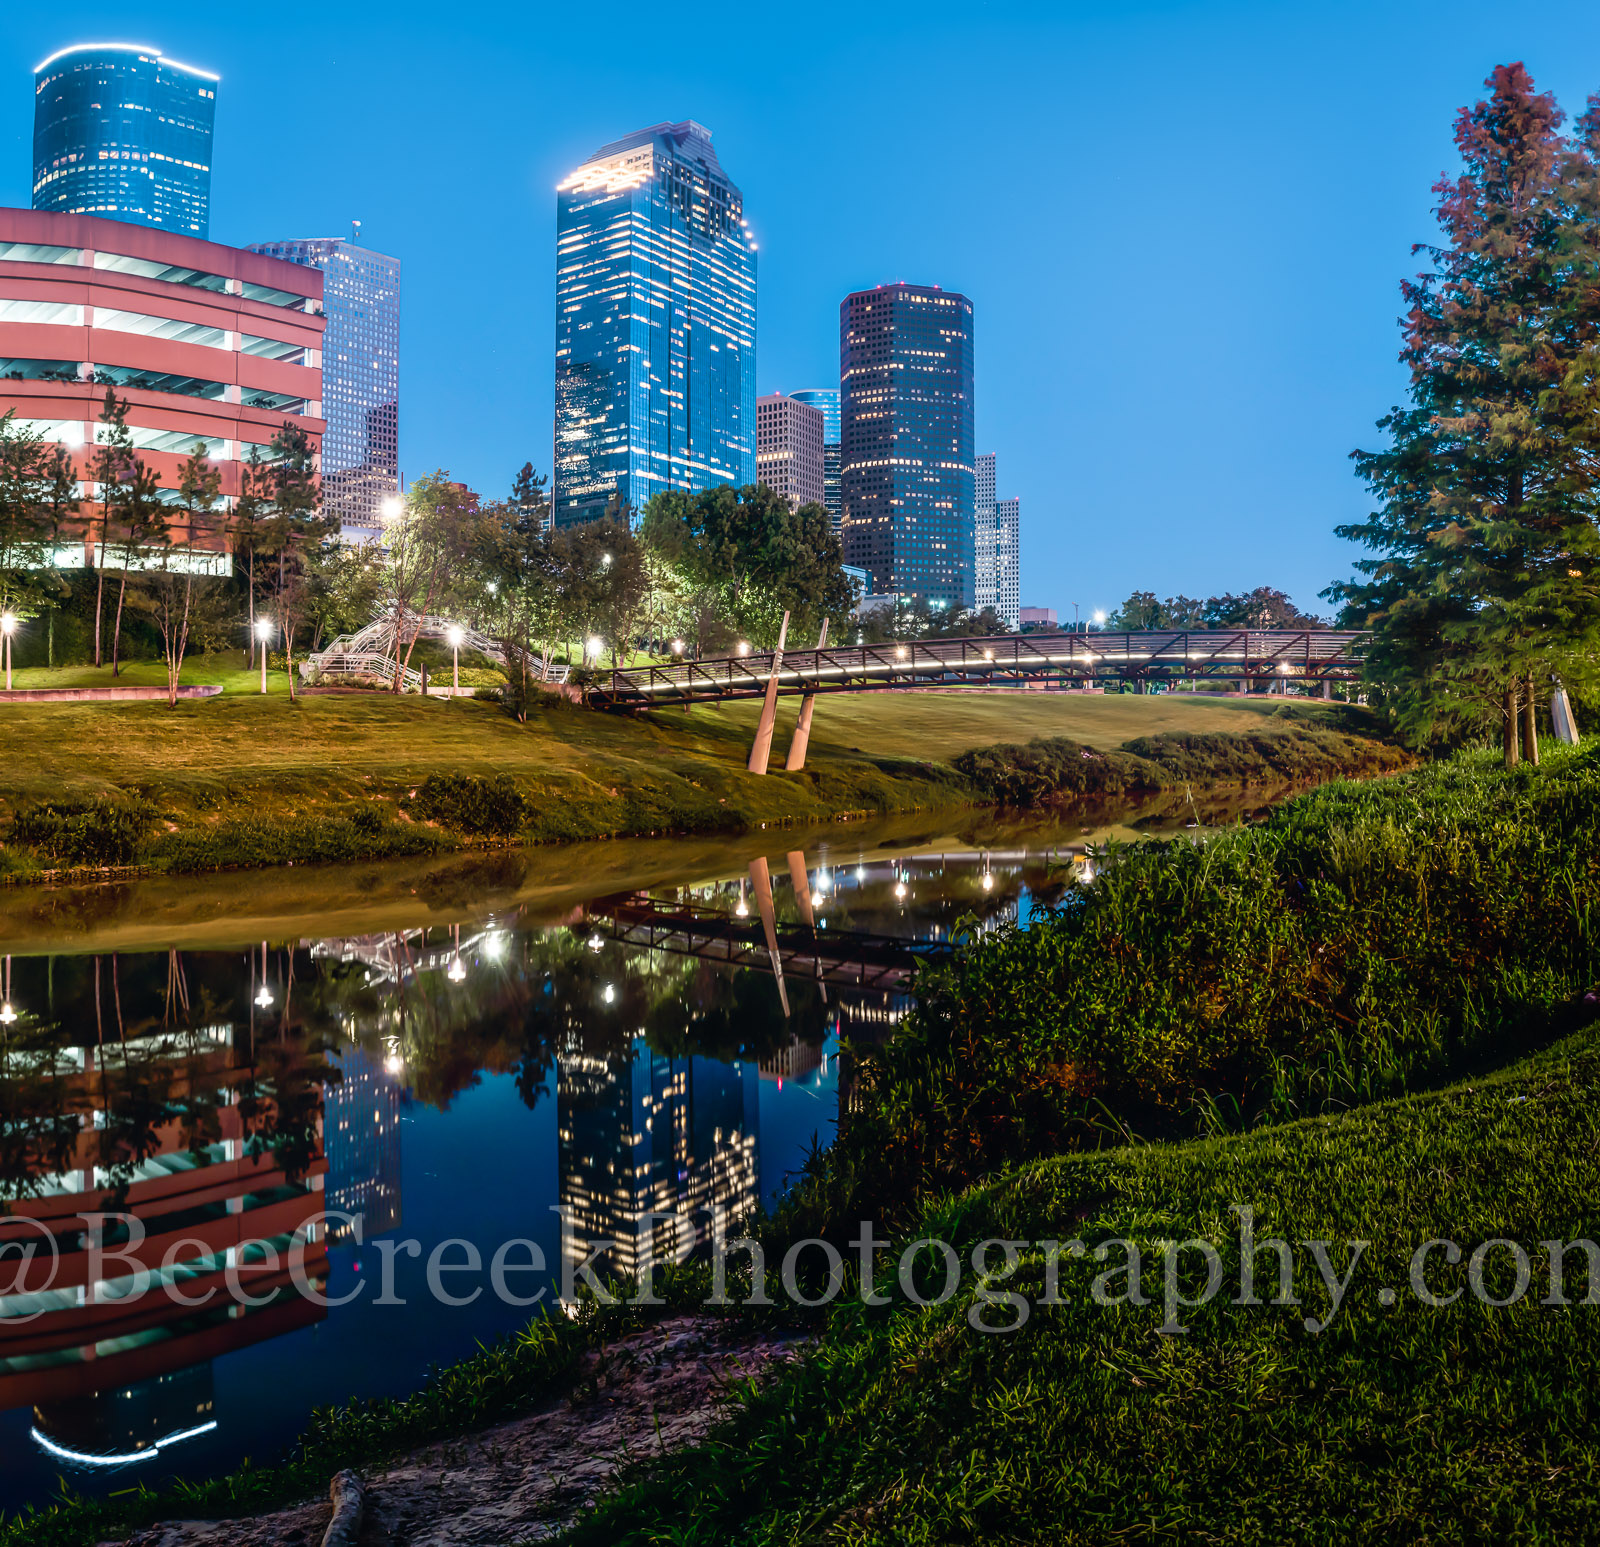 Houston, bagby to sabine, promenade, bridge, downtown, skyline, twilight, blue hour, dusk, pedestrian bridges, panorama, pano, america, cityscapes, buffalo bayou, water, reflections, stock bridge phot, photo